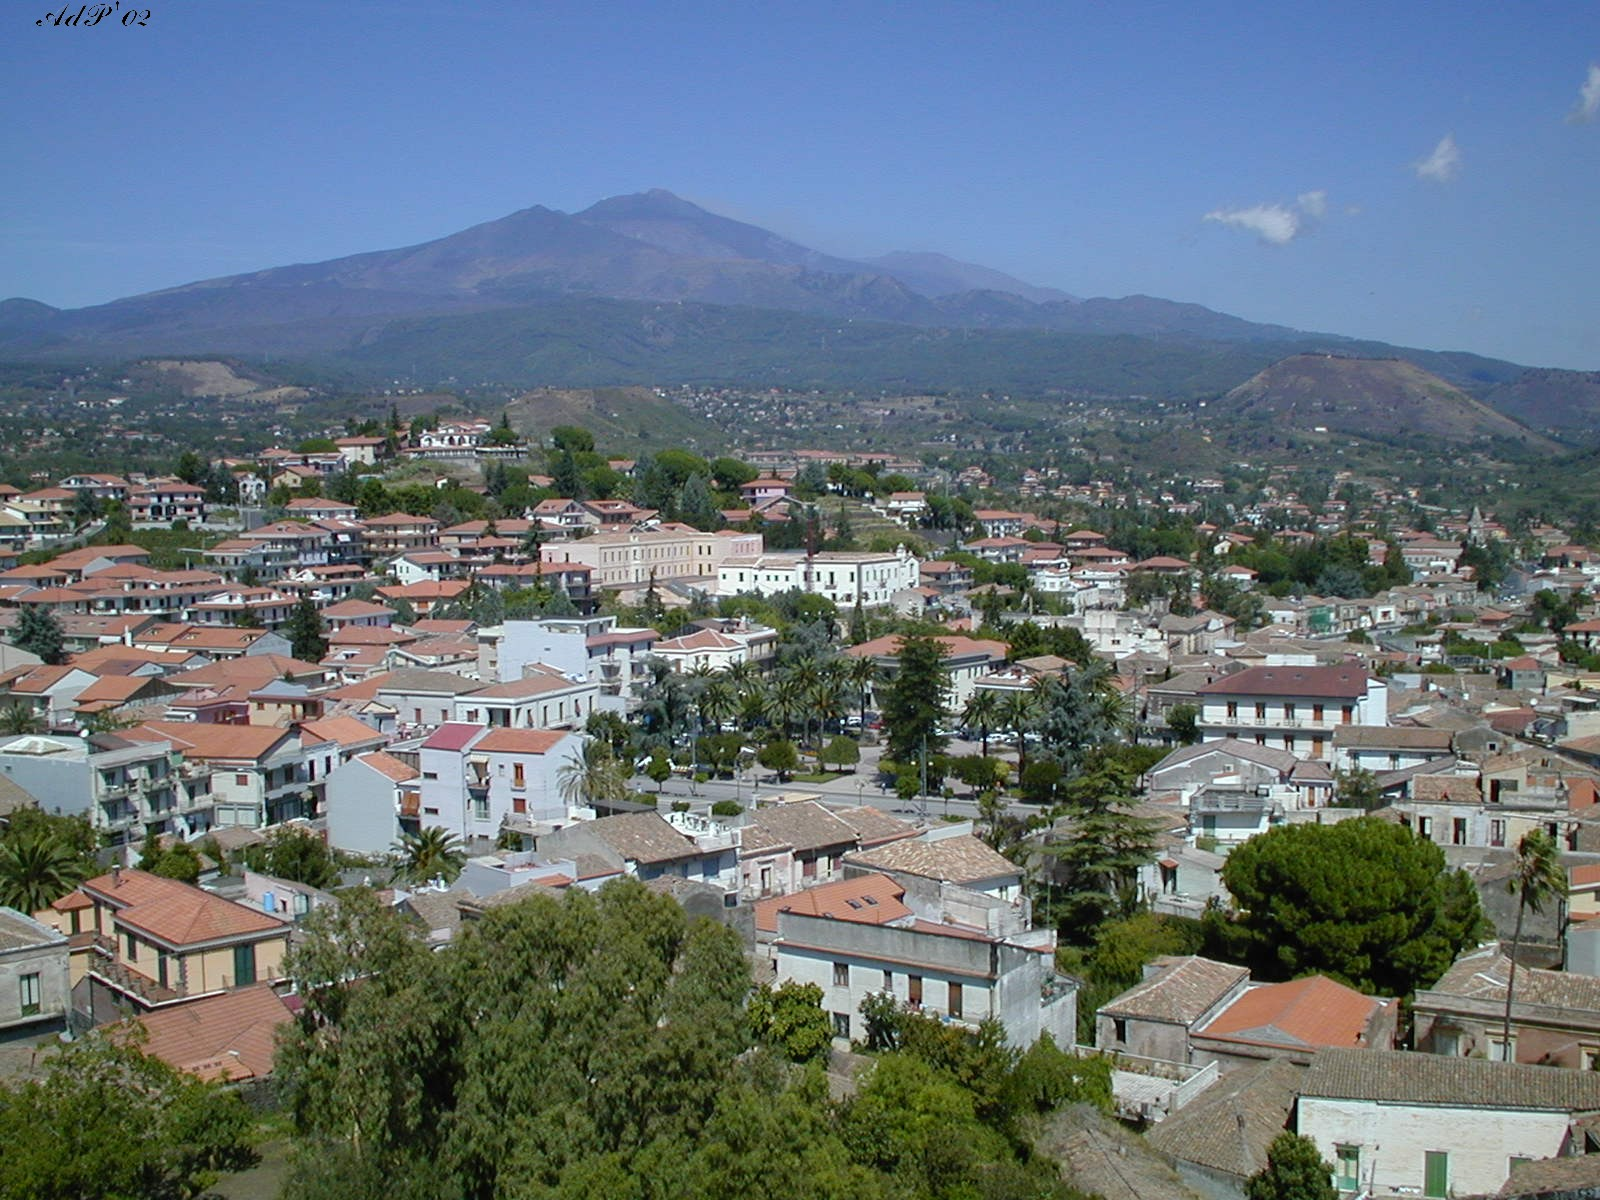 Landscape view with Etna